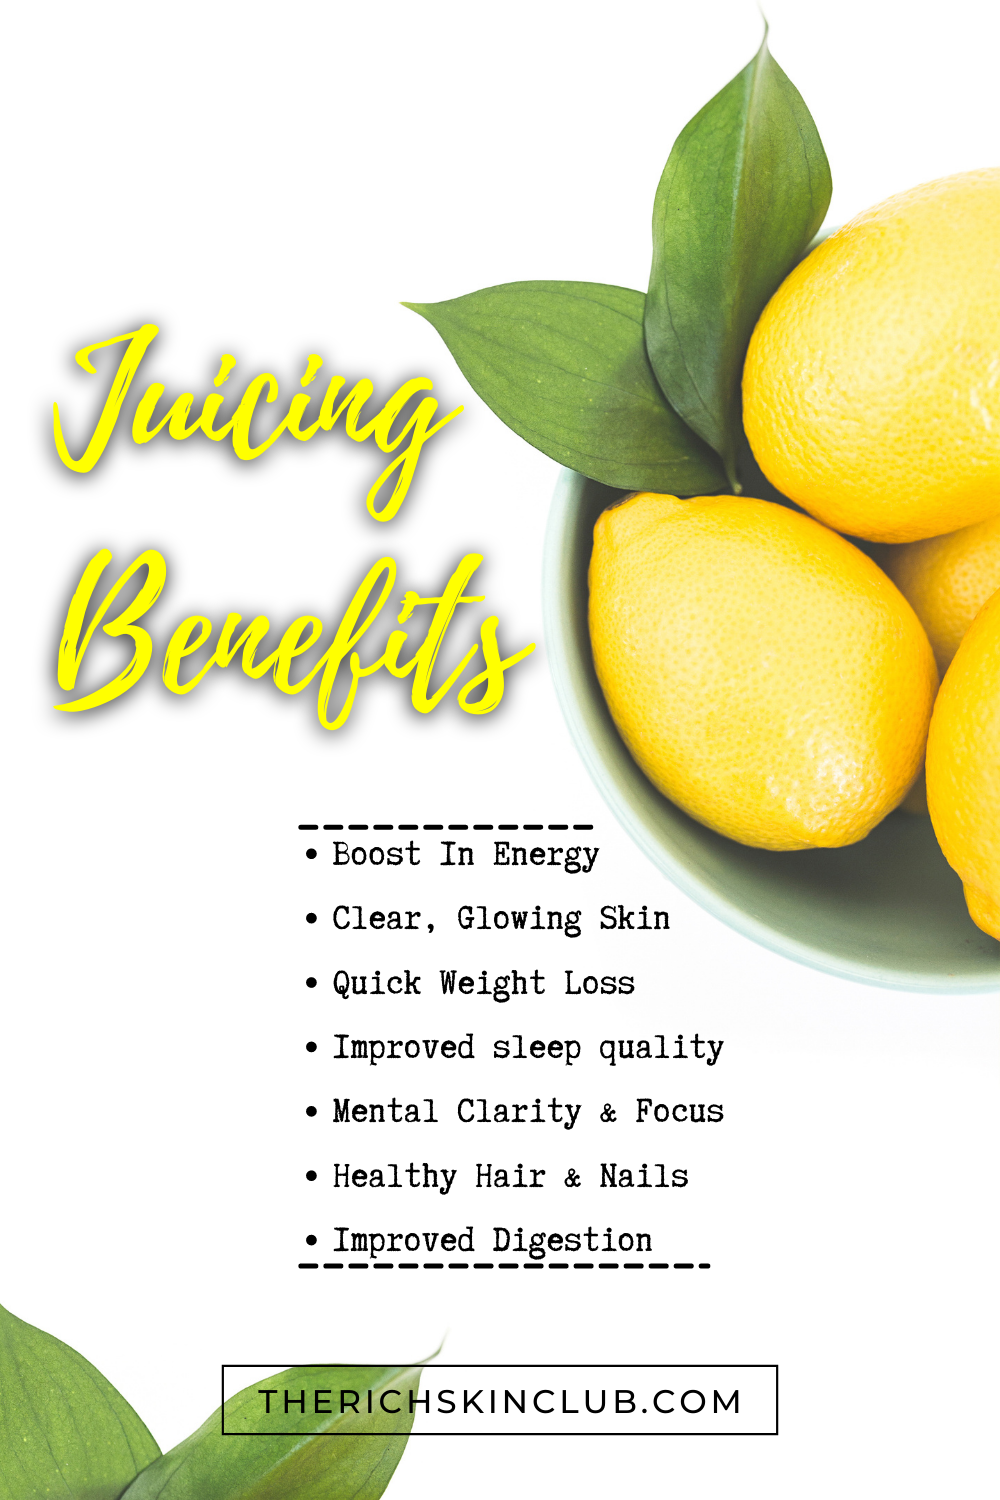 10 Amazing Juicing Recipes to drop weight, boost your energy, your skin and your immune system. Juicing introduces your system to a wide variety of vitamins and antioxidants while reinforcing your immune system with the important nutrients it needs to fight disease. #JuiceCleanse #JuicingRecipes #GreenJuiceBenefits #JuicingForHealth #JuiceForSkinGlow